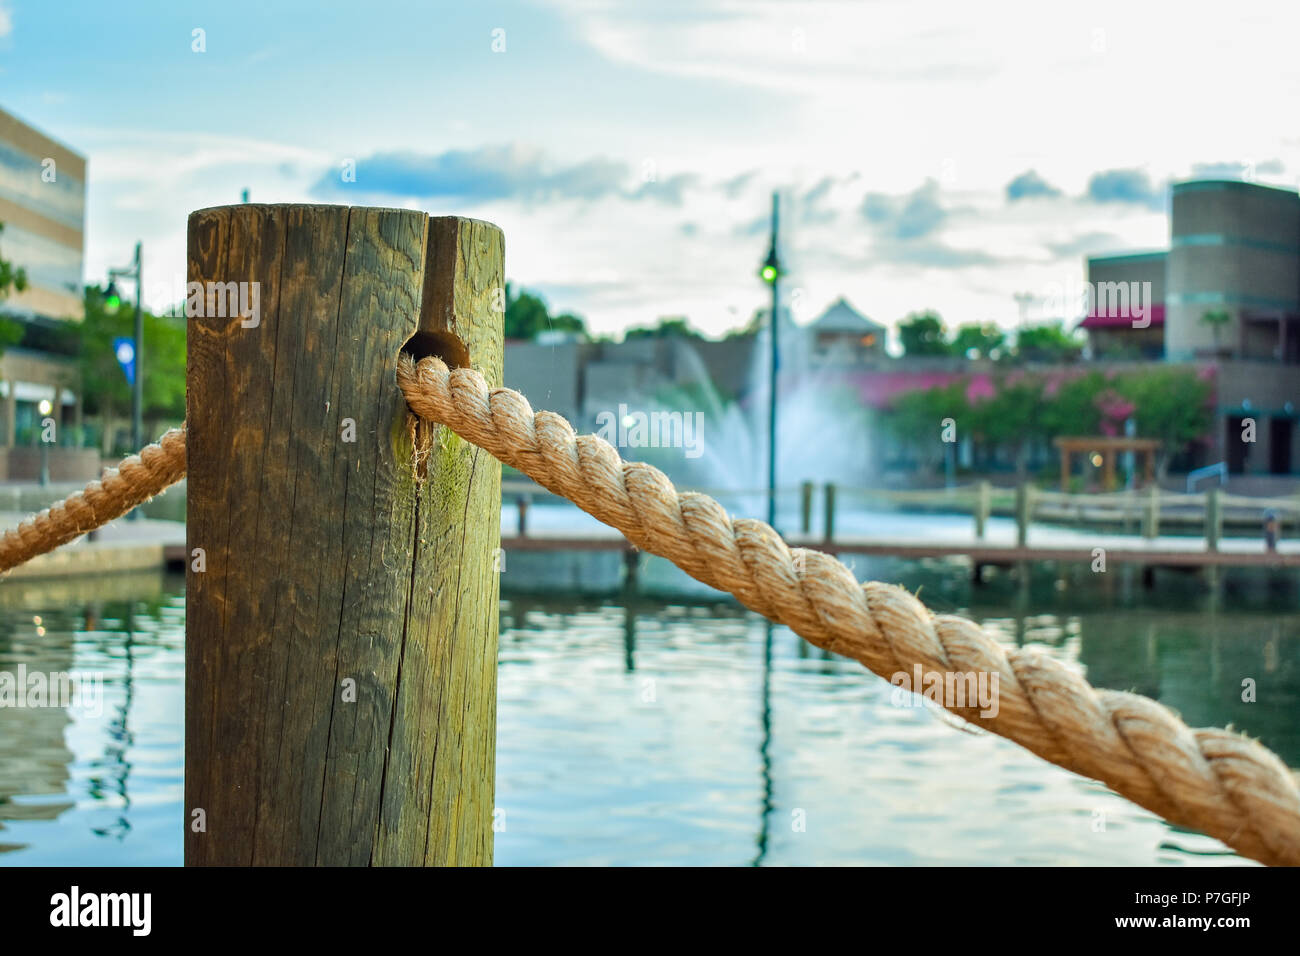 Wooden Pillar With Rope In Front Of Waterfall And Pond The Shoppes